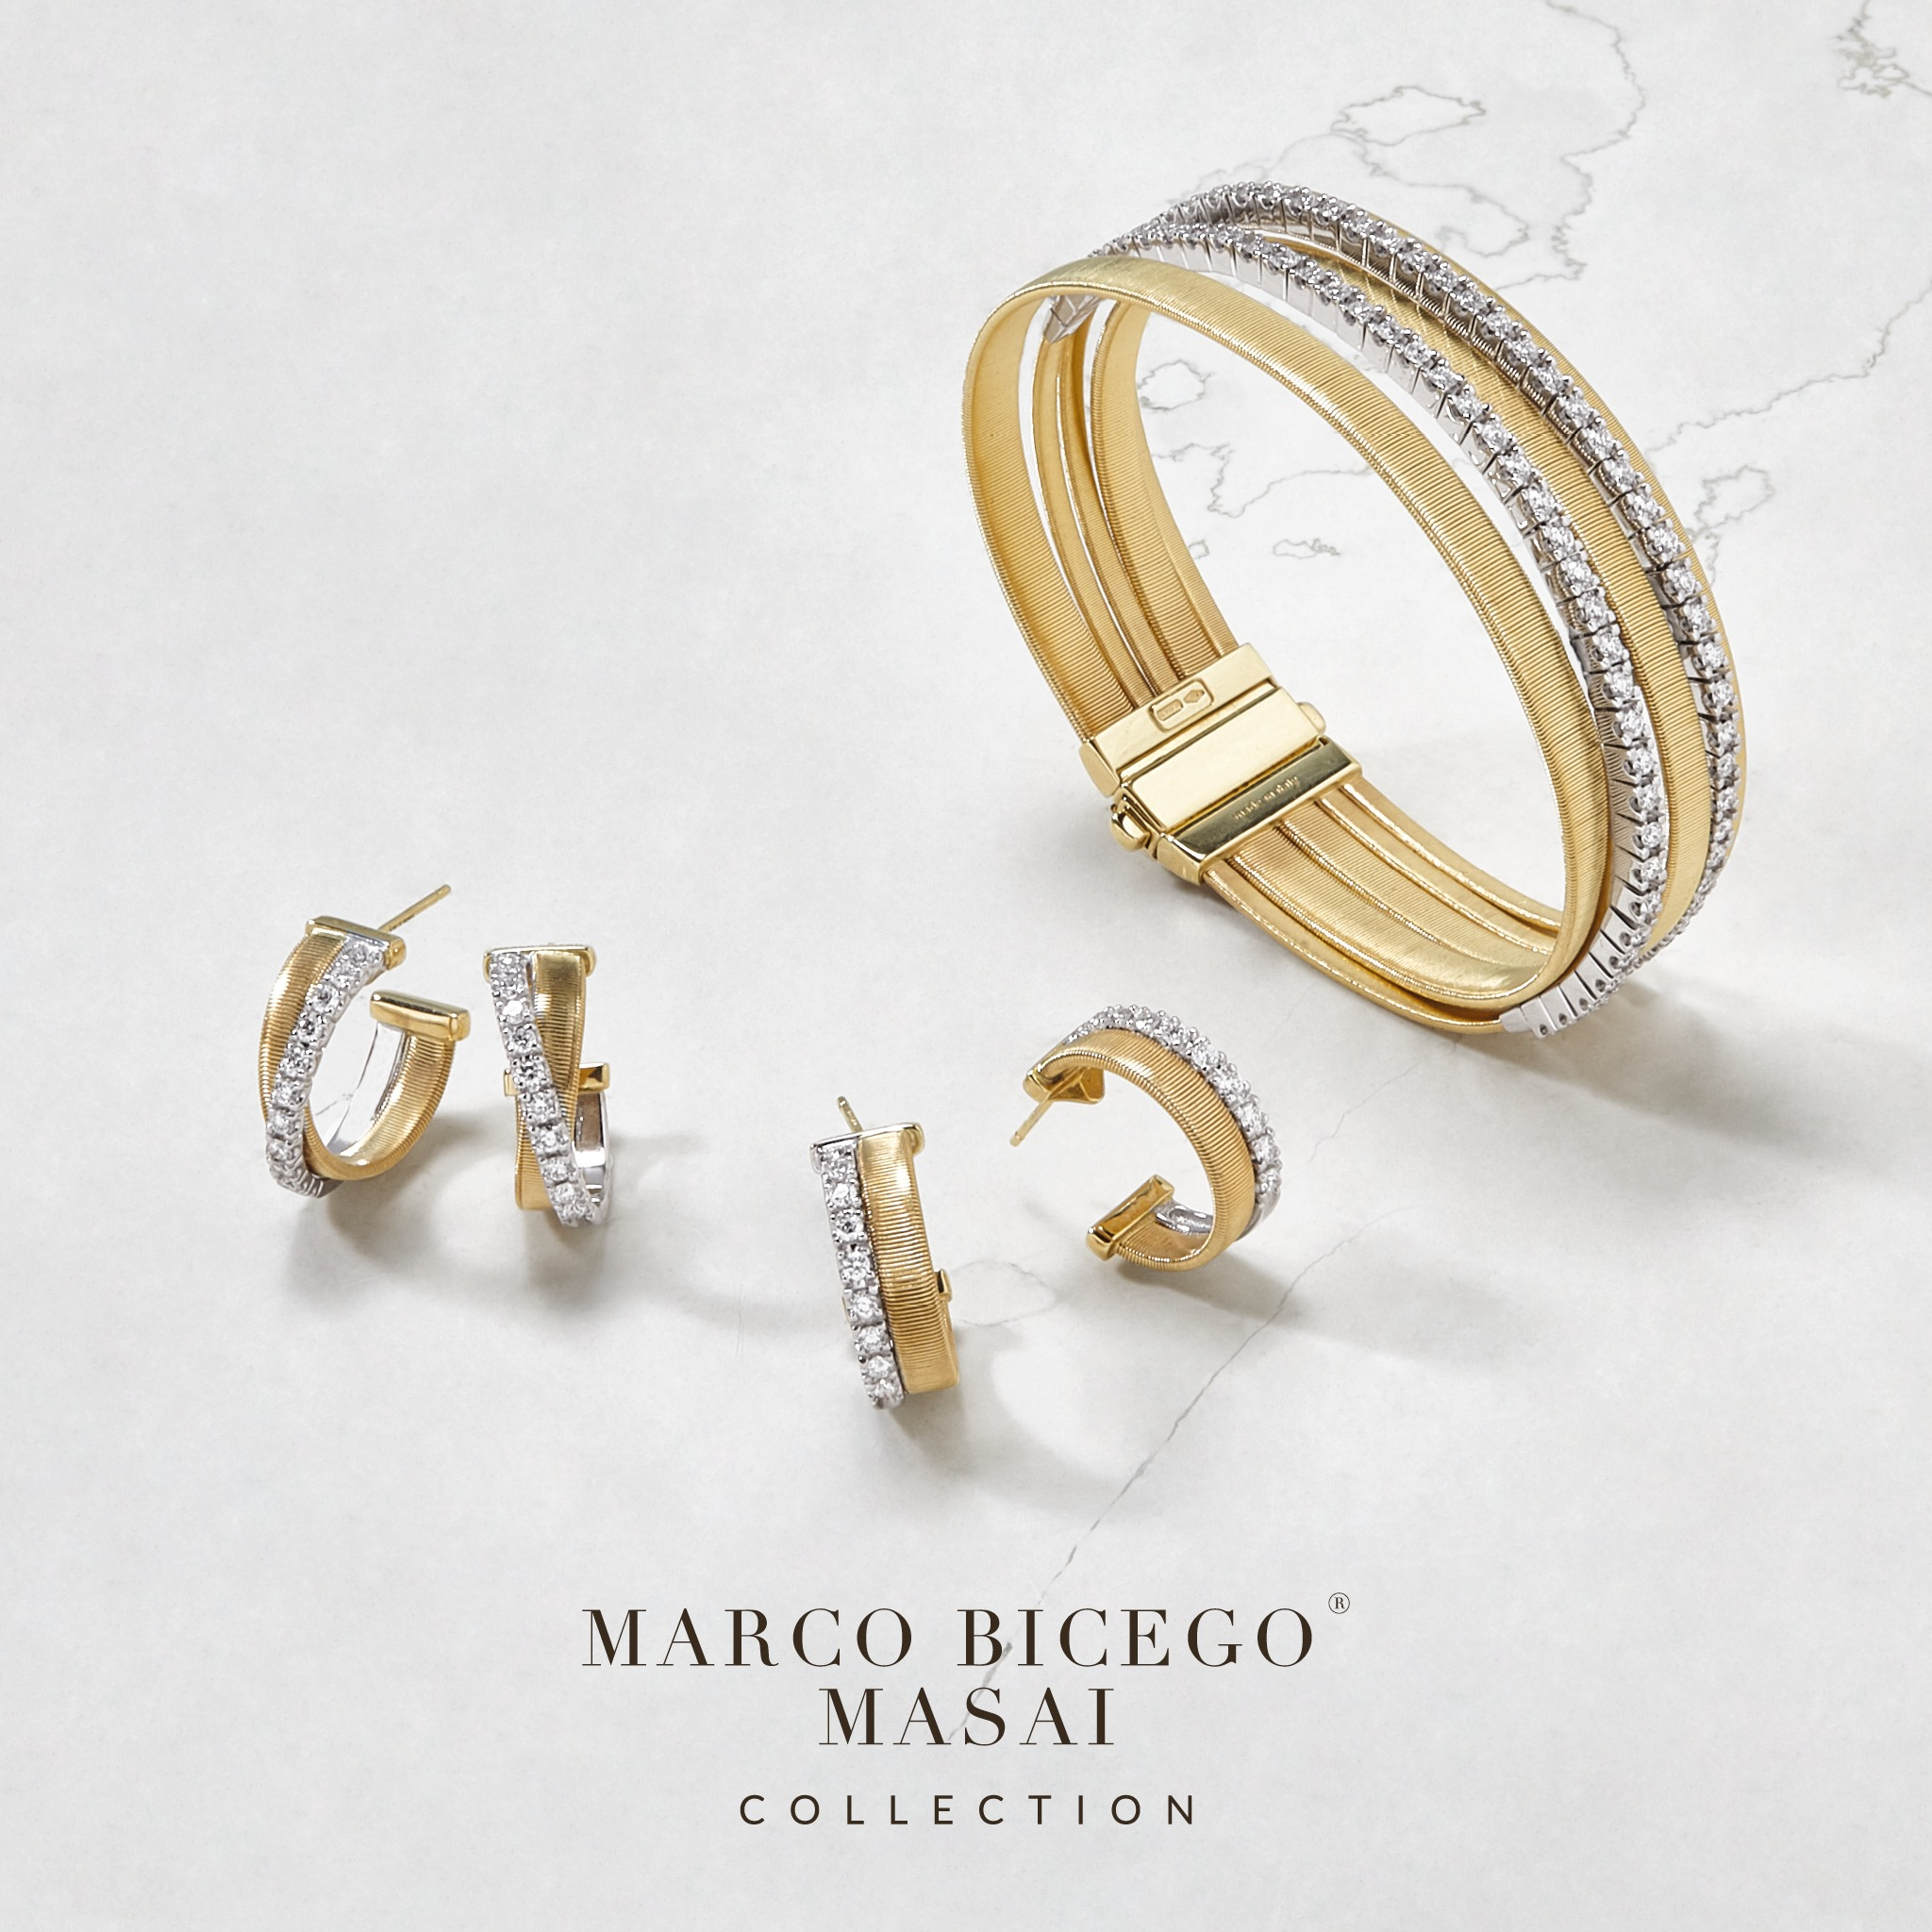 Marco Bicego jewels